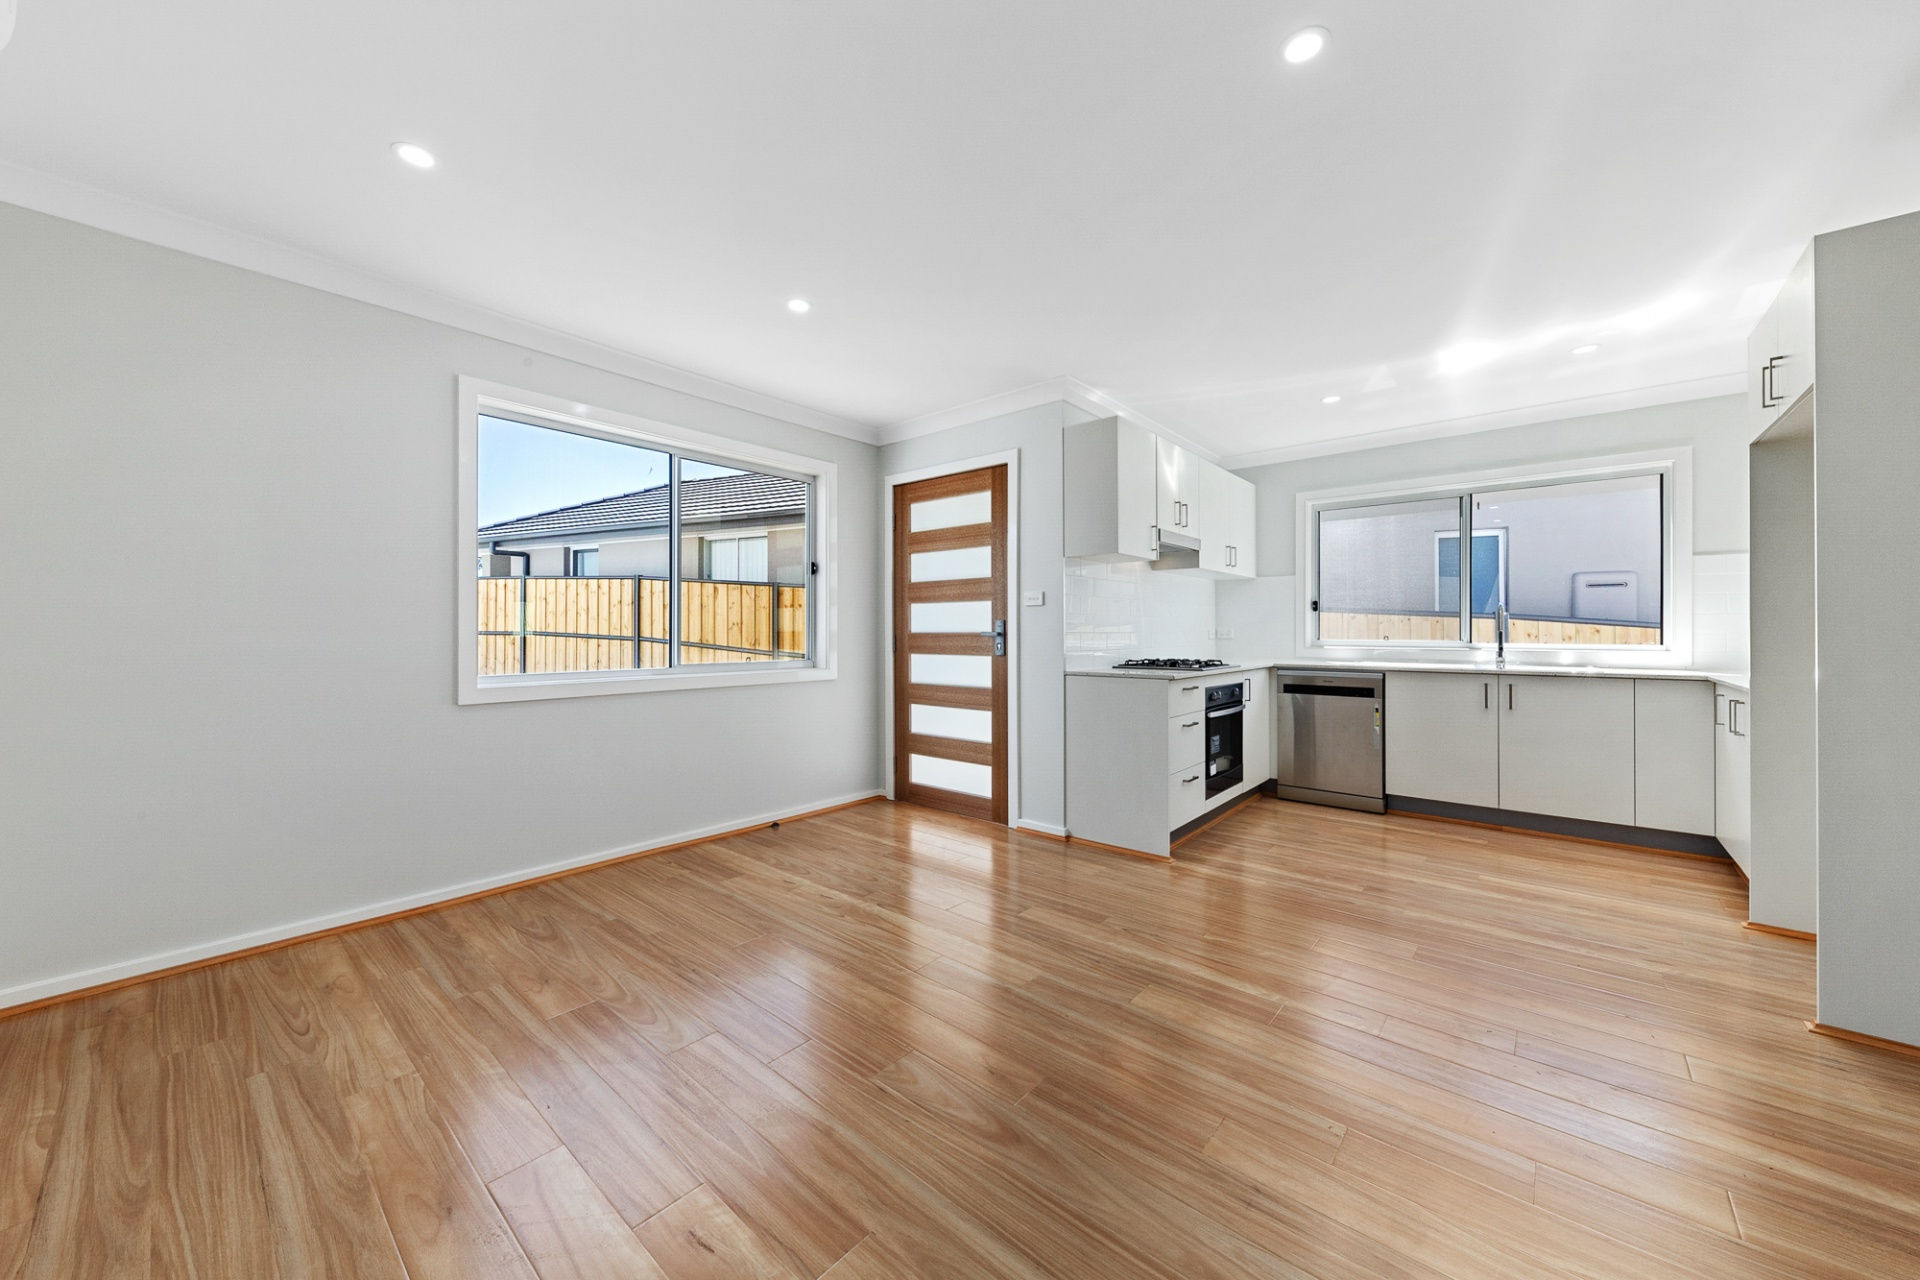 2 Rooms, House, Leased, Ross Place, 1 Bathrooms, Listing ID 1299, Kellyville, NSW, Australia,